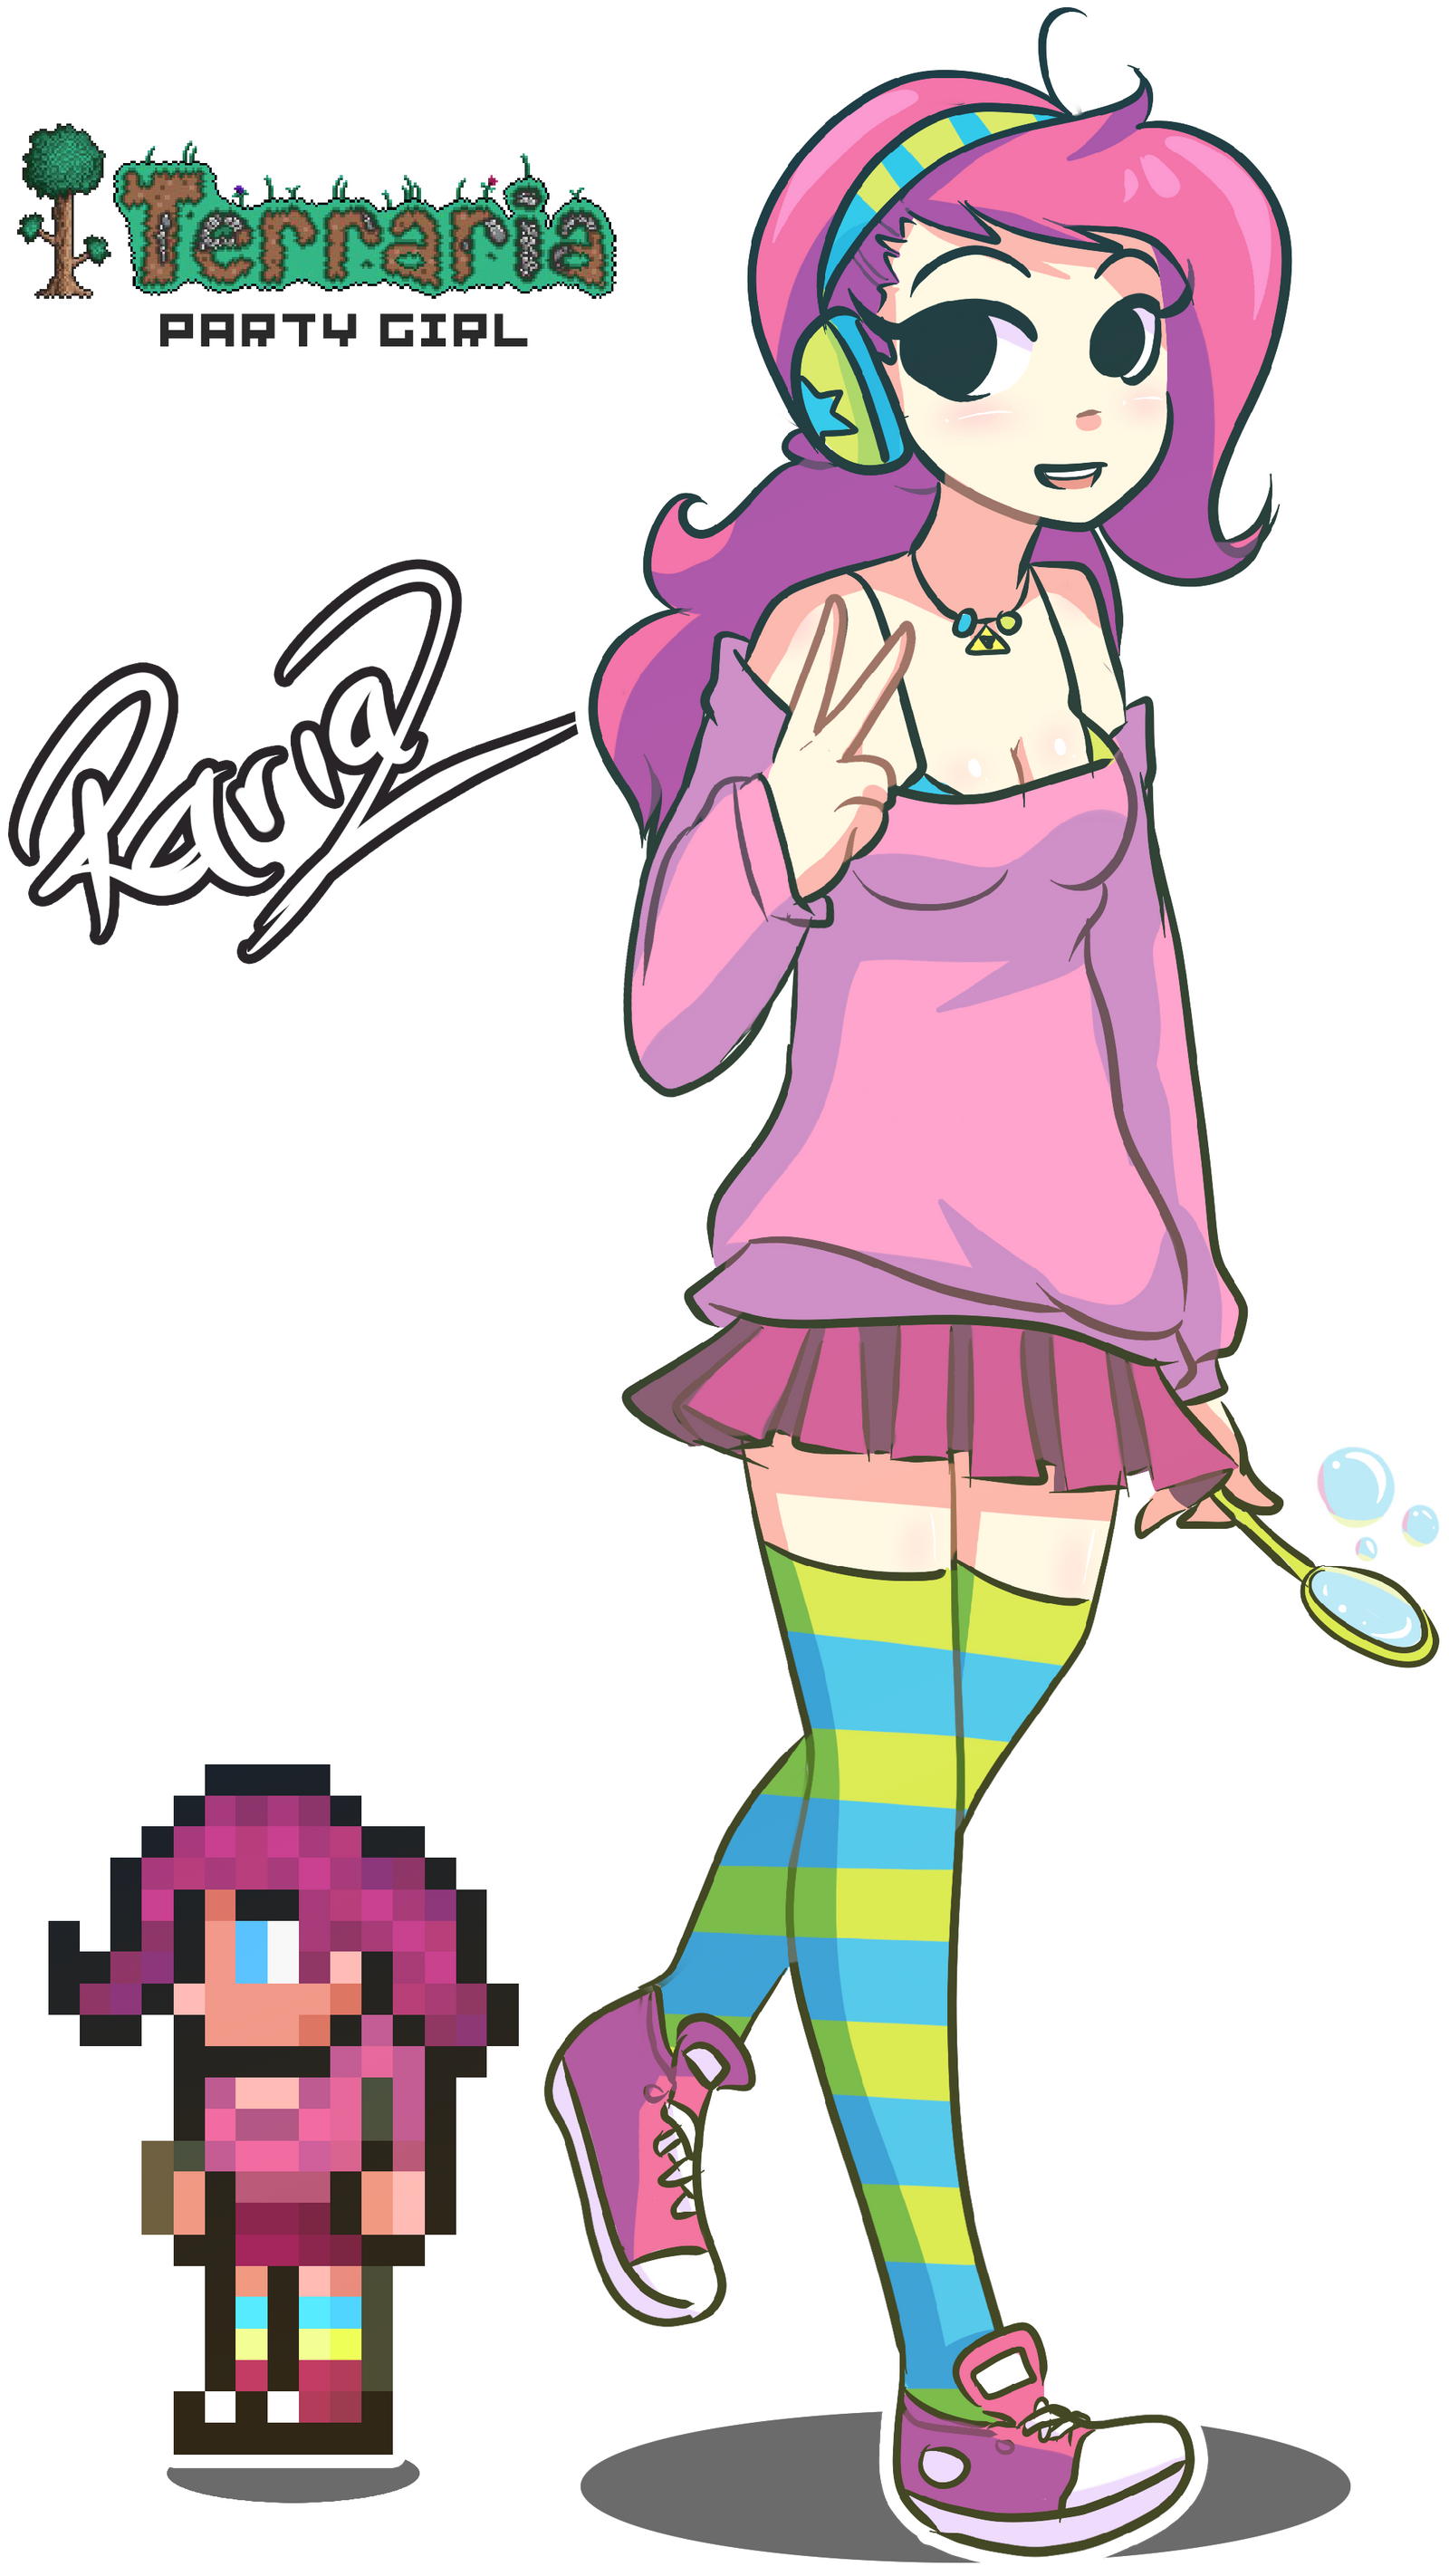 party girl terraria